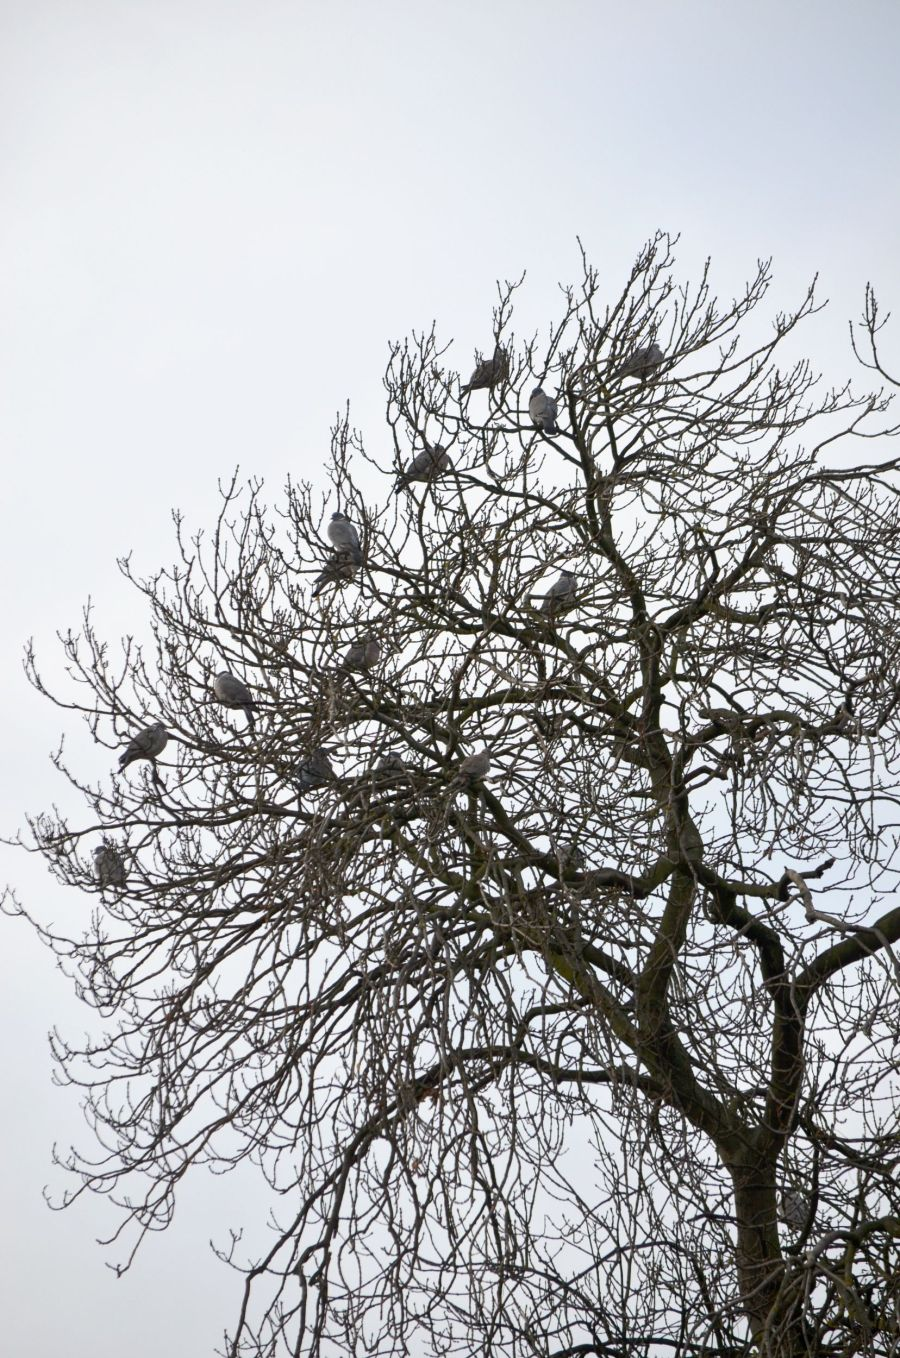 DSC_2324PigeonTree